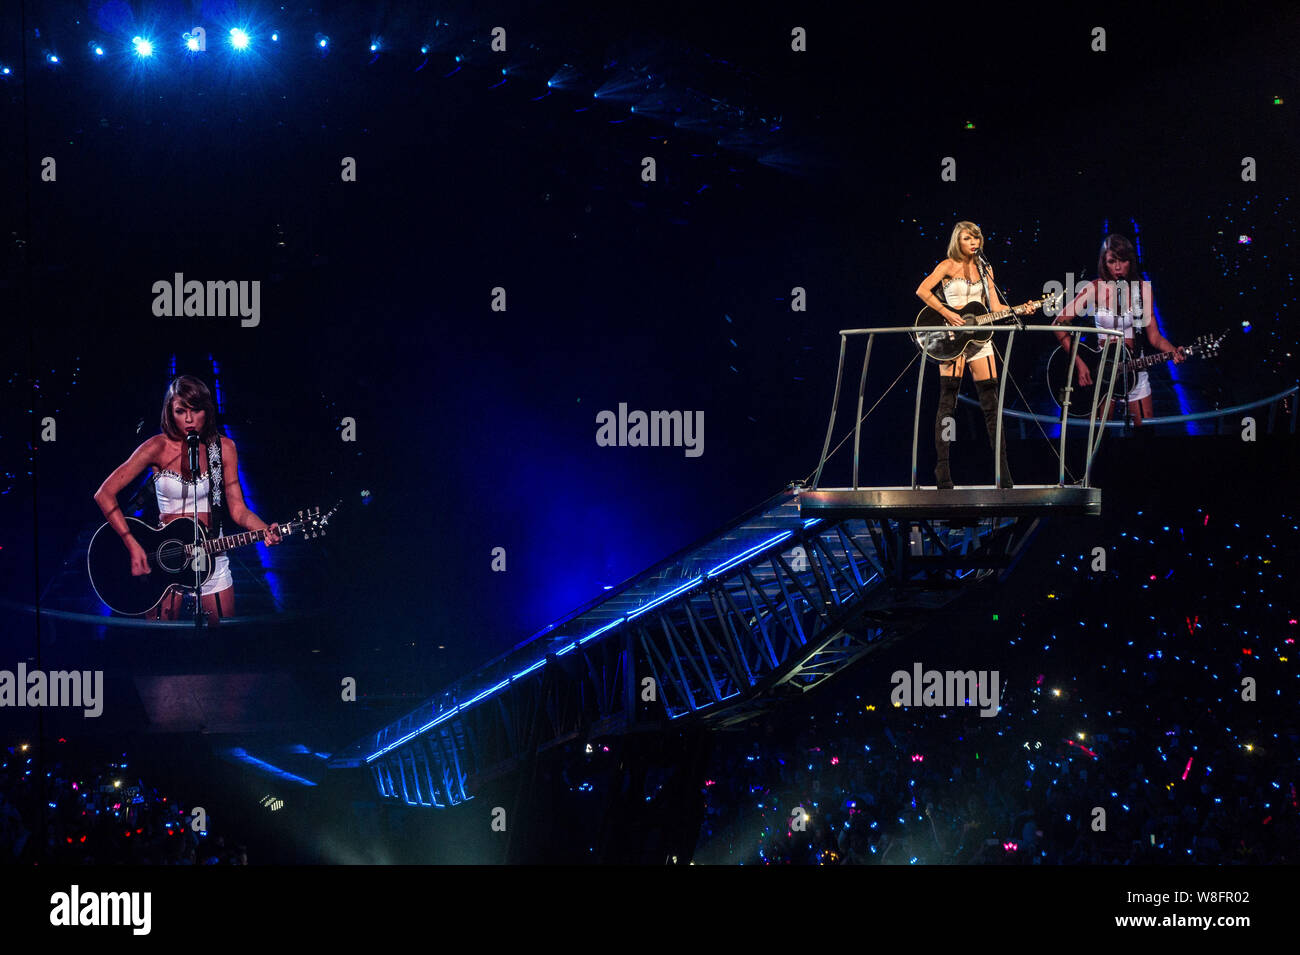 American Singer Taylor Swift Performs At A Concert During Her 1989 World Tour In Shanghai China 10 November 2015 Stock Photo Alamy